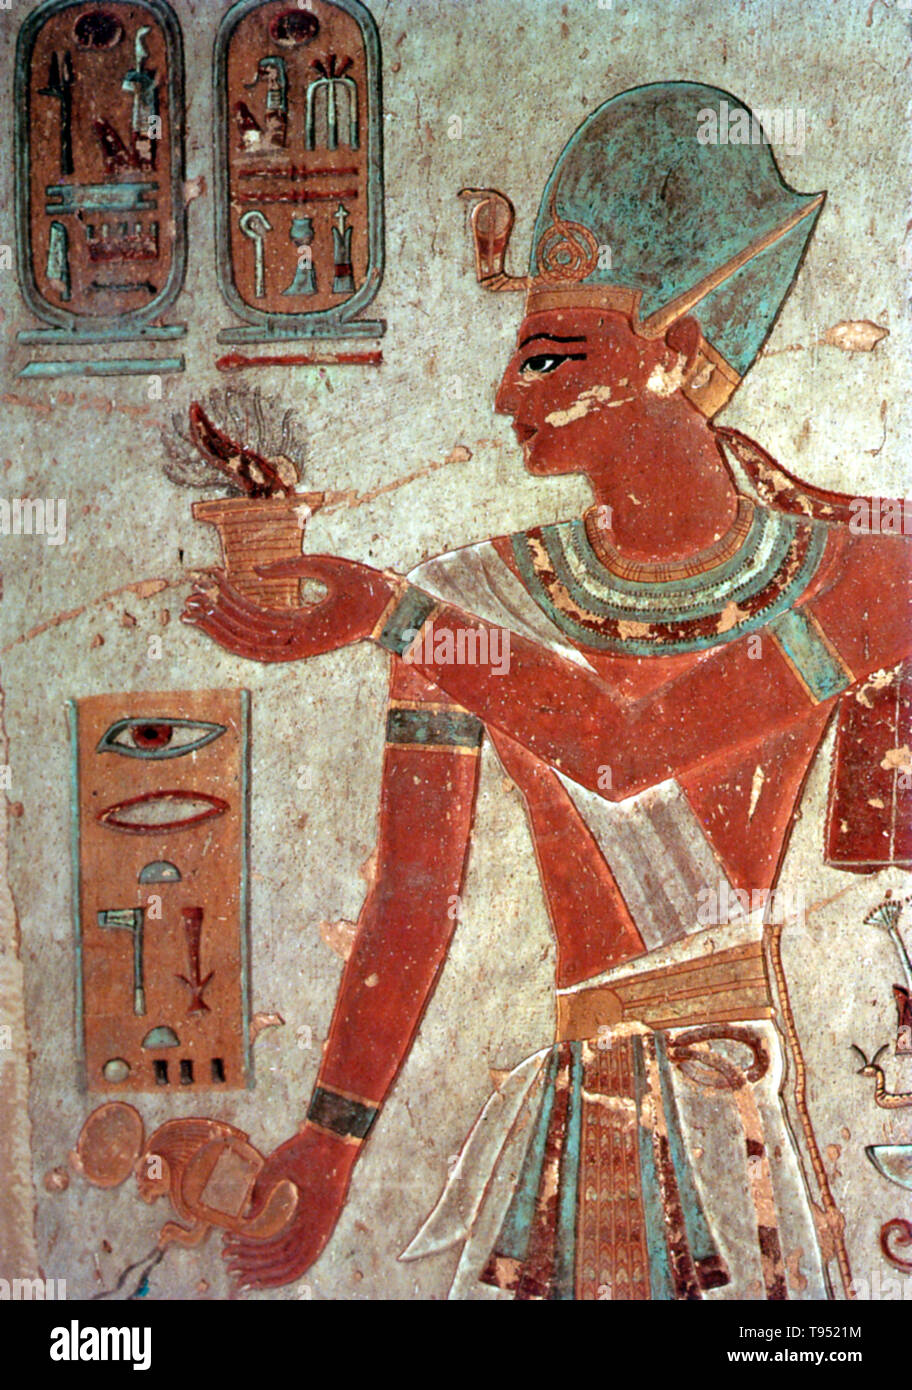 Painted relief of Ramses III offering incense, Valley of the Kings. Usimare Ramesses III was the second Pharaoh of the 20th Dynasty and is considered to be the last New Kingdom king to wield any substantial authority over Egypt. His long reign saw the decline of Egyptian political and economic power, linked to a series of invasions and internal economic problems. Ramesses III was the son of Setnakhte and Queen Tiy-Merenese. - Stock Image